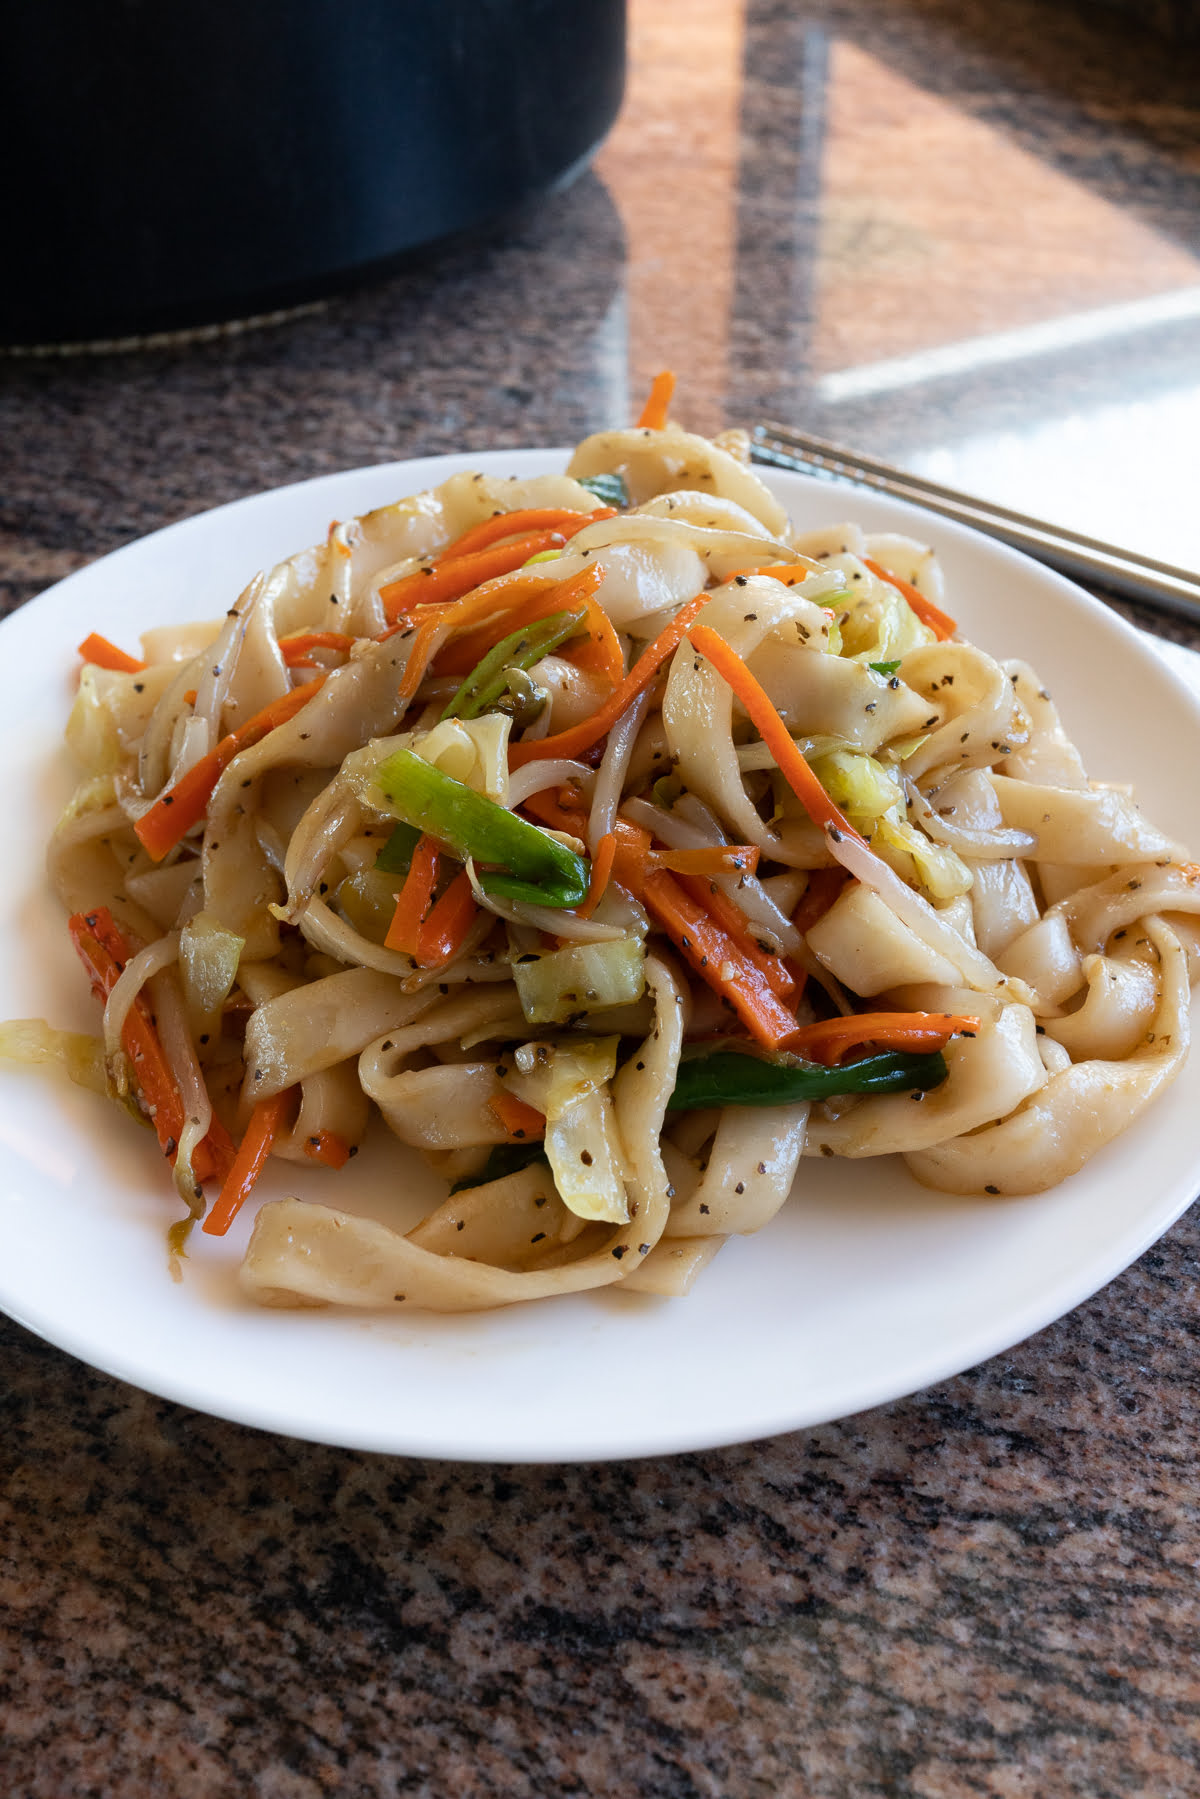 A plate of chow fun, ready to eat.